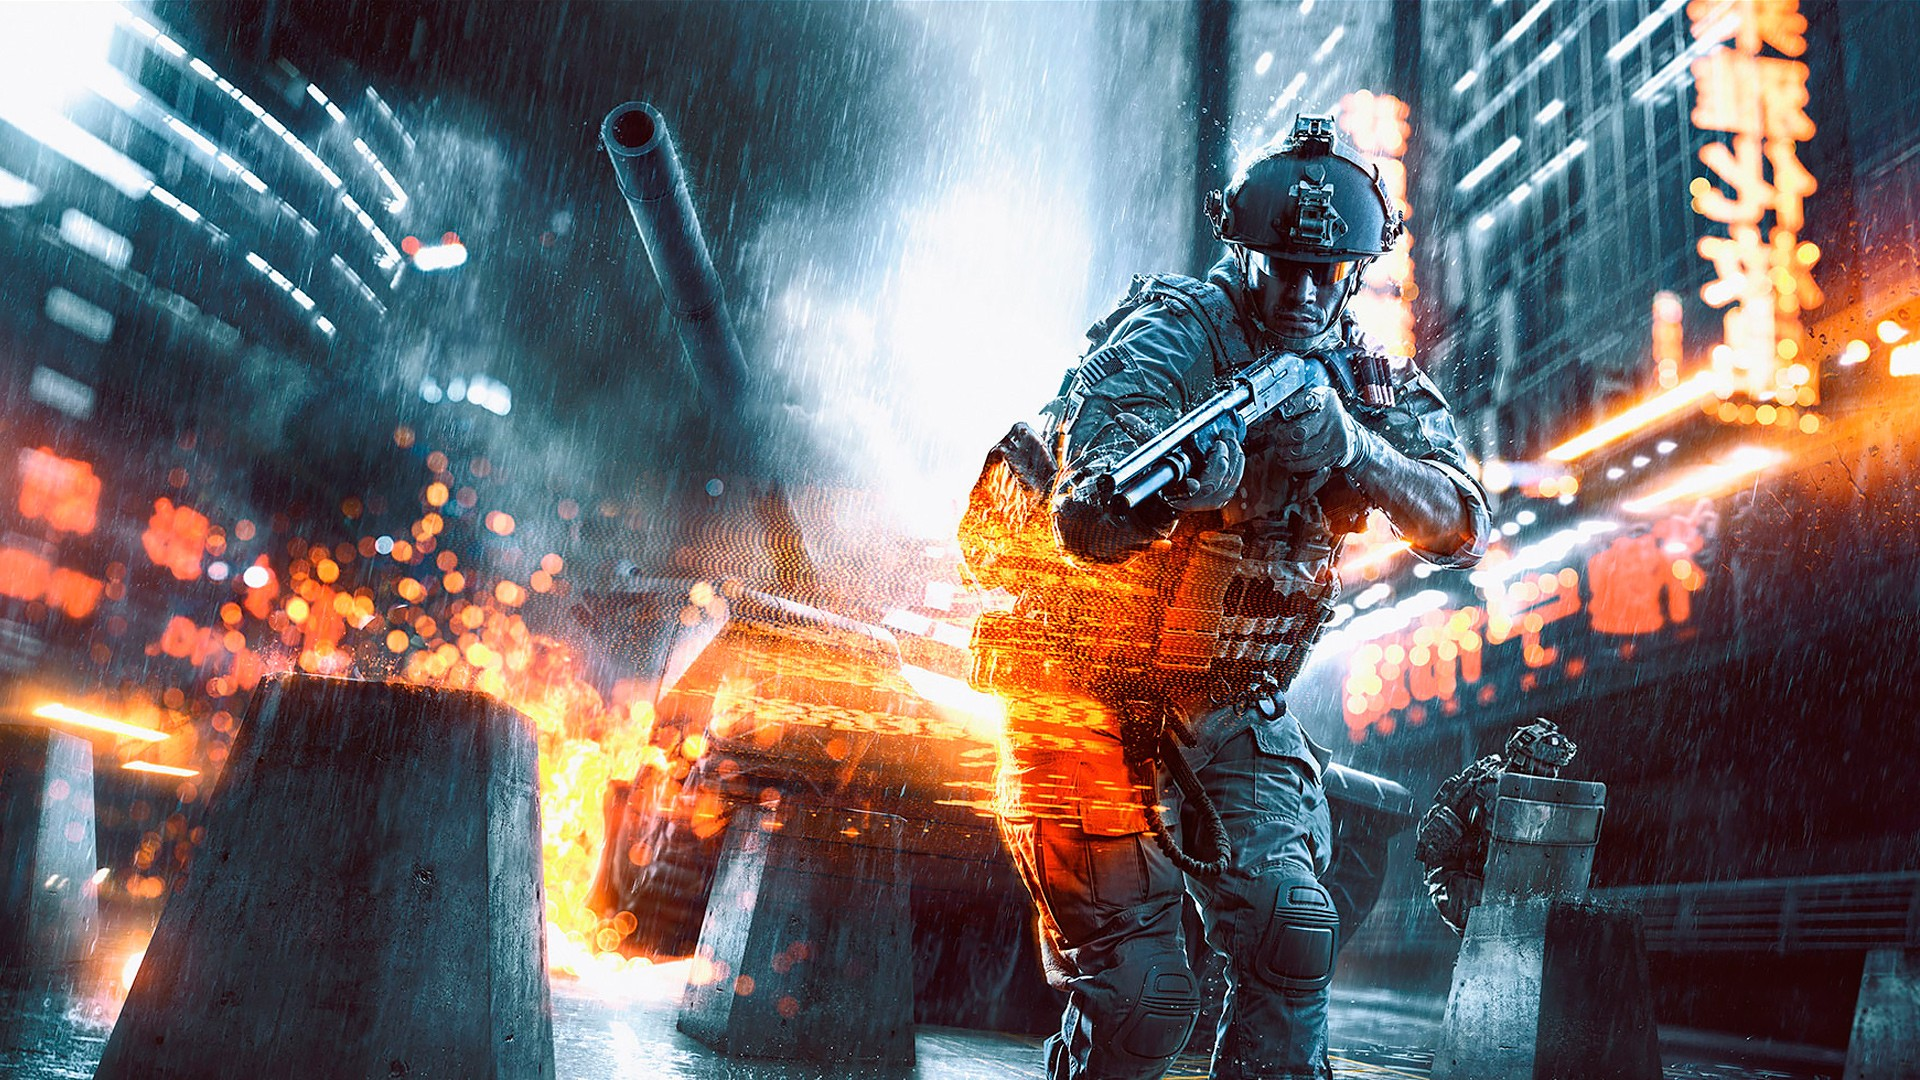 Battlefield 4 Game HD, HD Games, 4k Wallpapers, Images ...